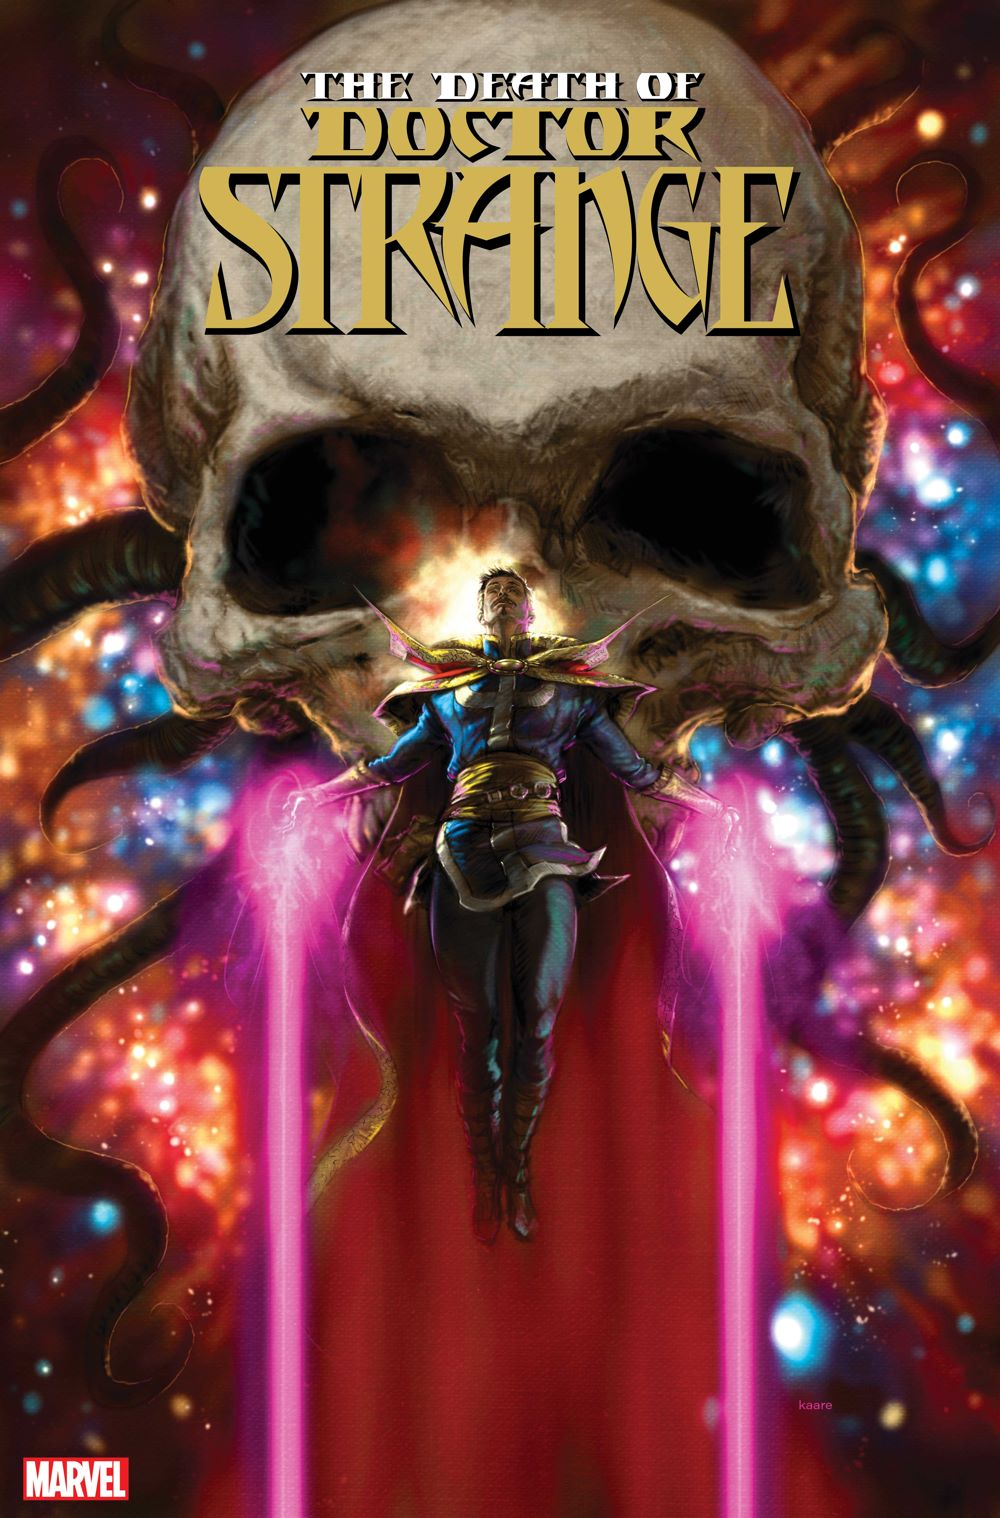 DRSDEATH2021001_cvr It's the end of the line in DEATH OF DOCTOR STRANGE